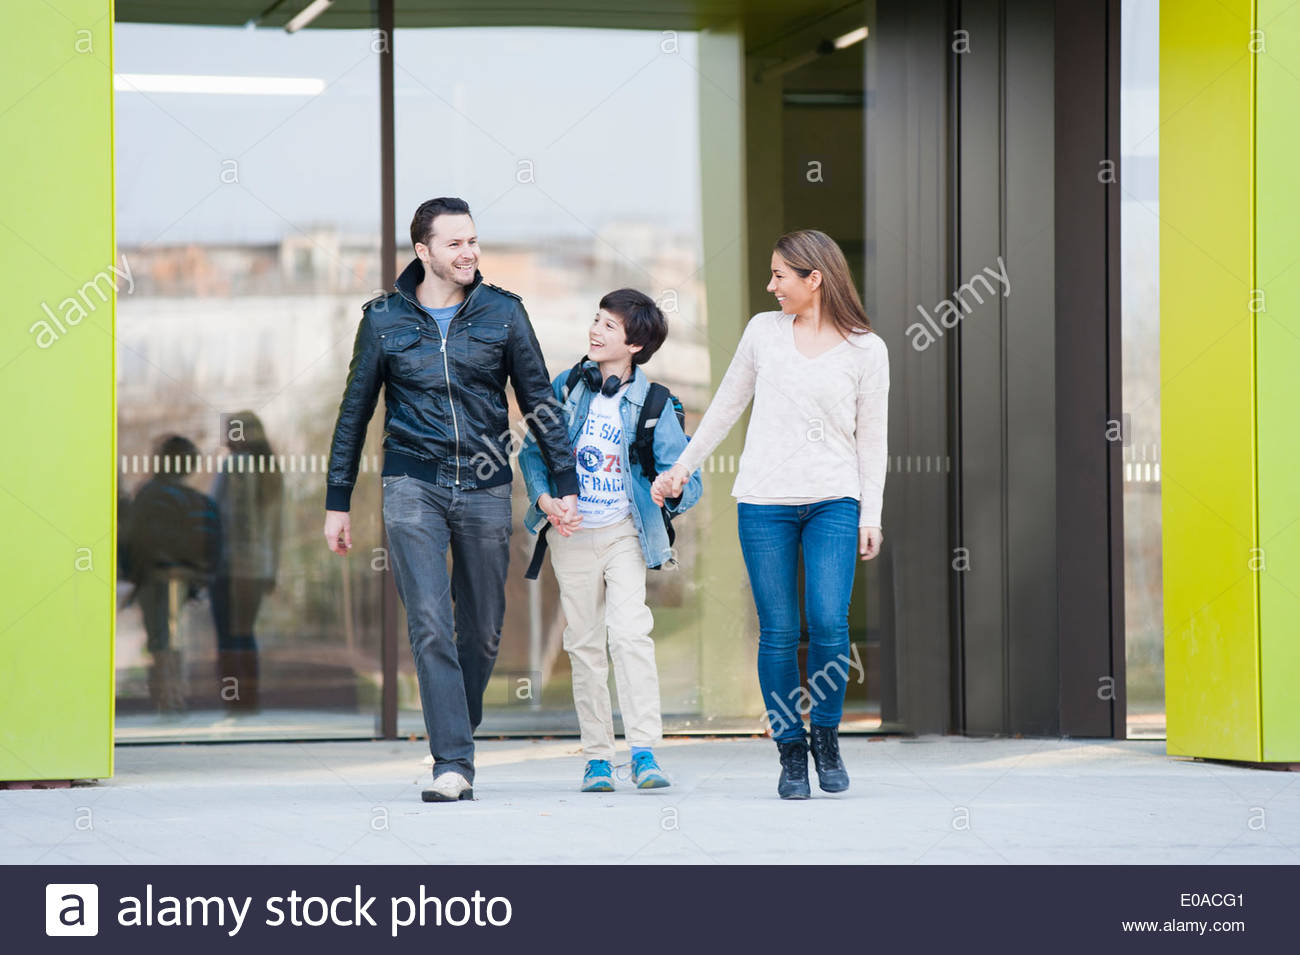 Family with one son walking outside building - Stock Image